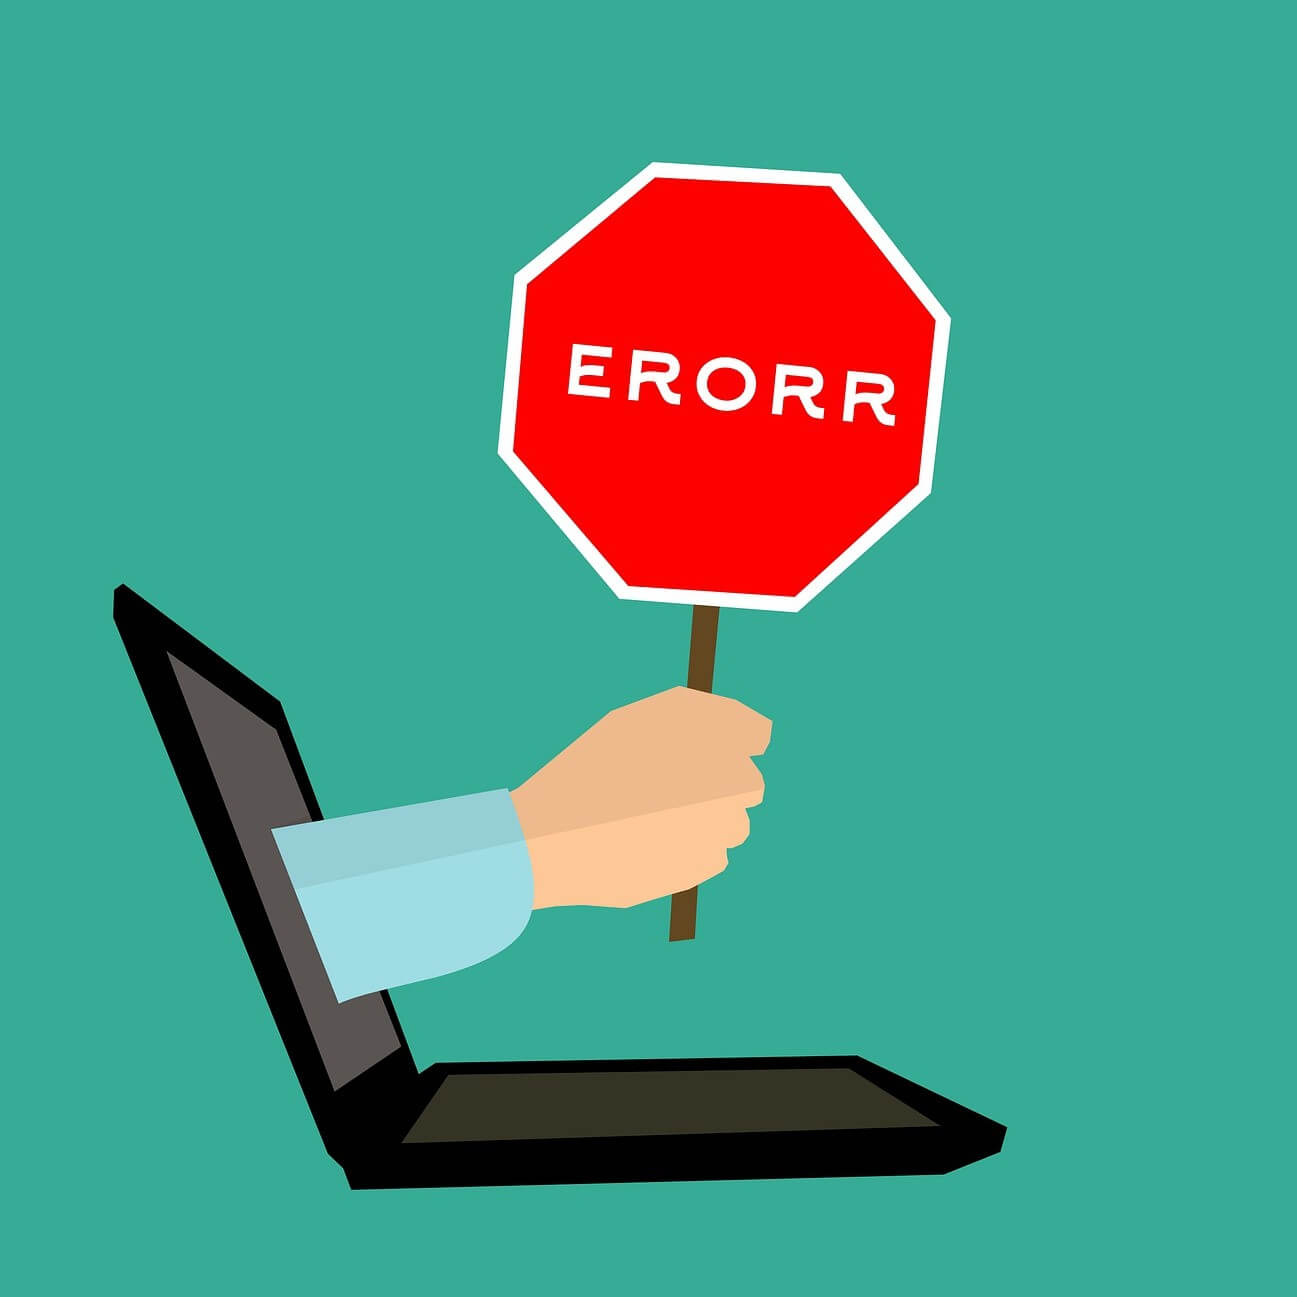 What causes Windows Backup error code 0x800700E1